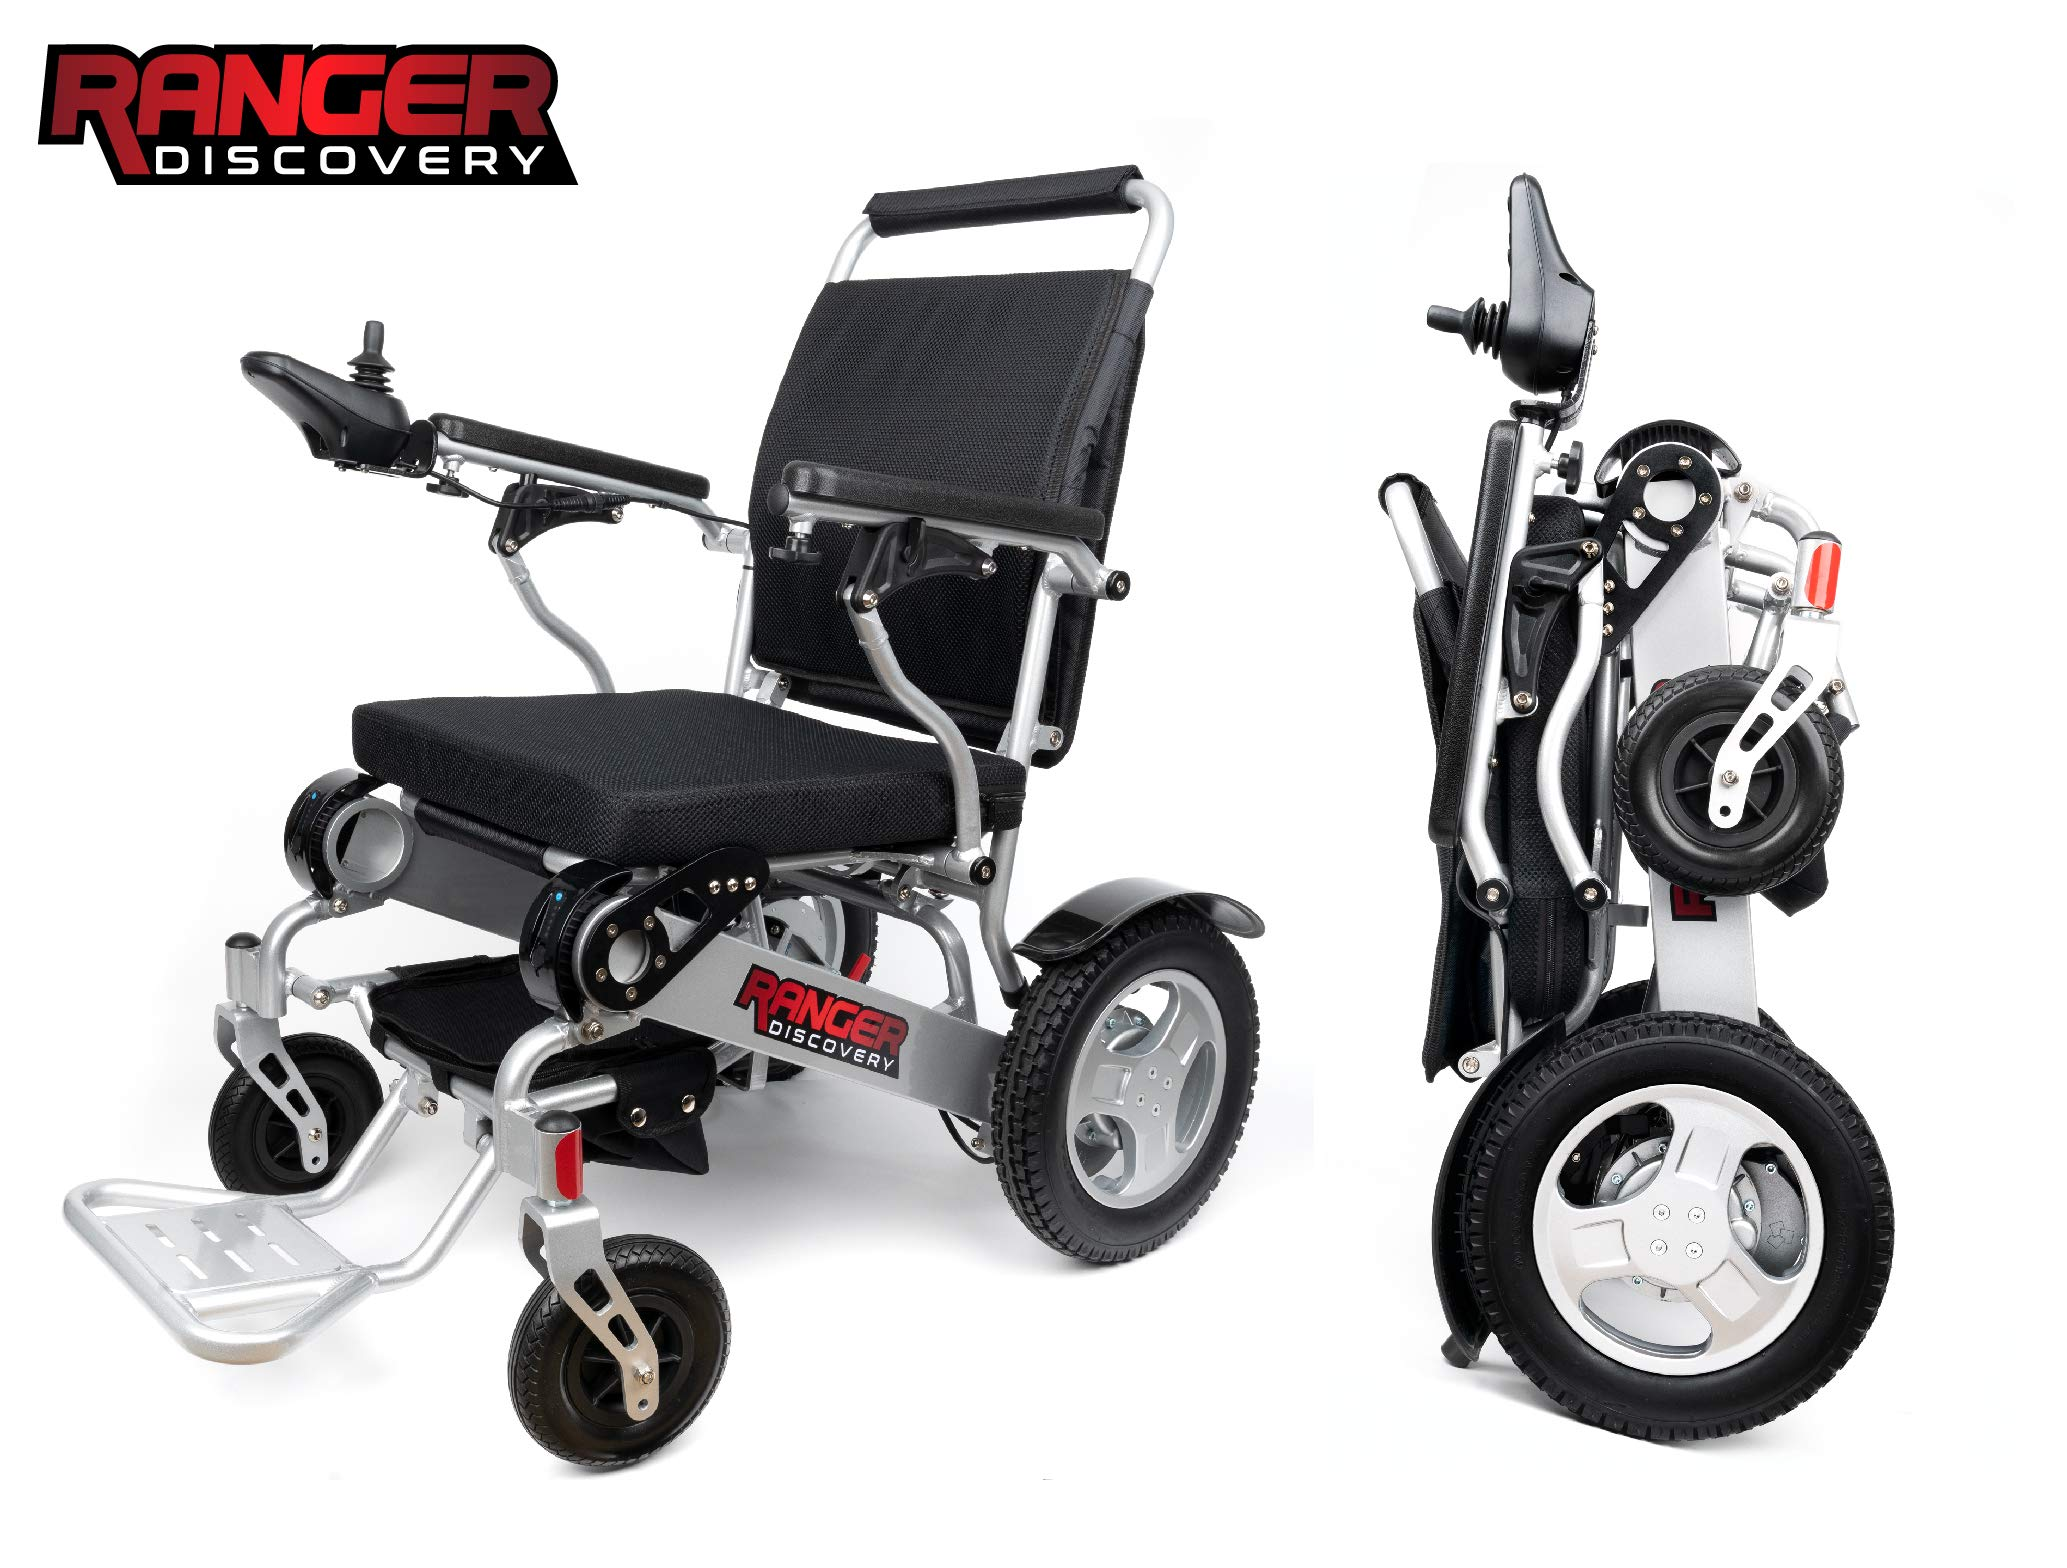 Porto Mobility Ranger D09 Premium Electric Power Wheelchair, Lightweight, Portable, Folding Motorized Wheelchair, Heavy Duty, Compact Folding Power Wheelchair, Airplane Permitted (Free Travel Case)